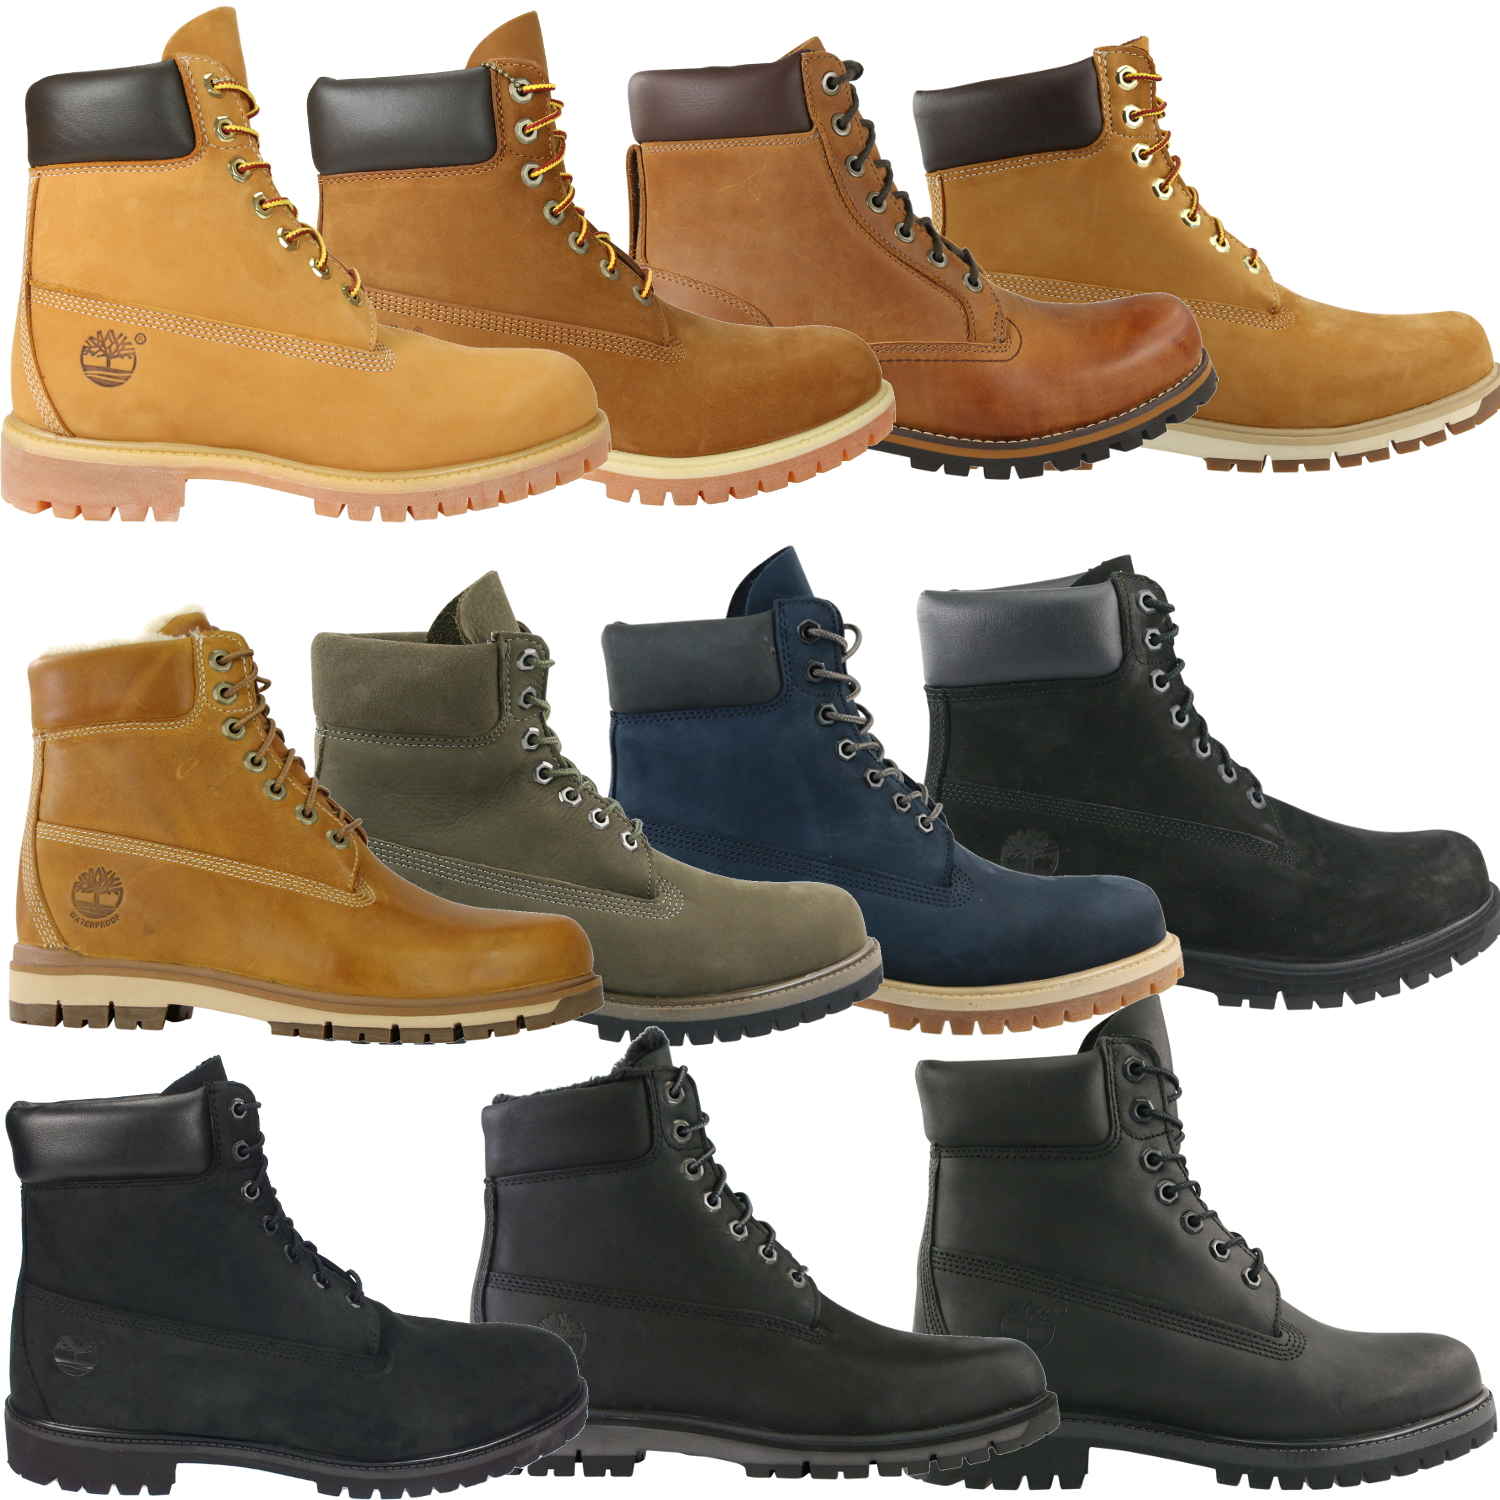 234280ce30 Timberland 6-Inch Premium Waterproof Boot Schuhe Stiefel ...